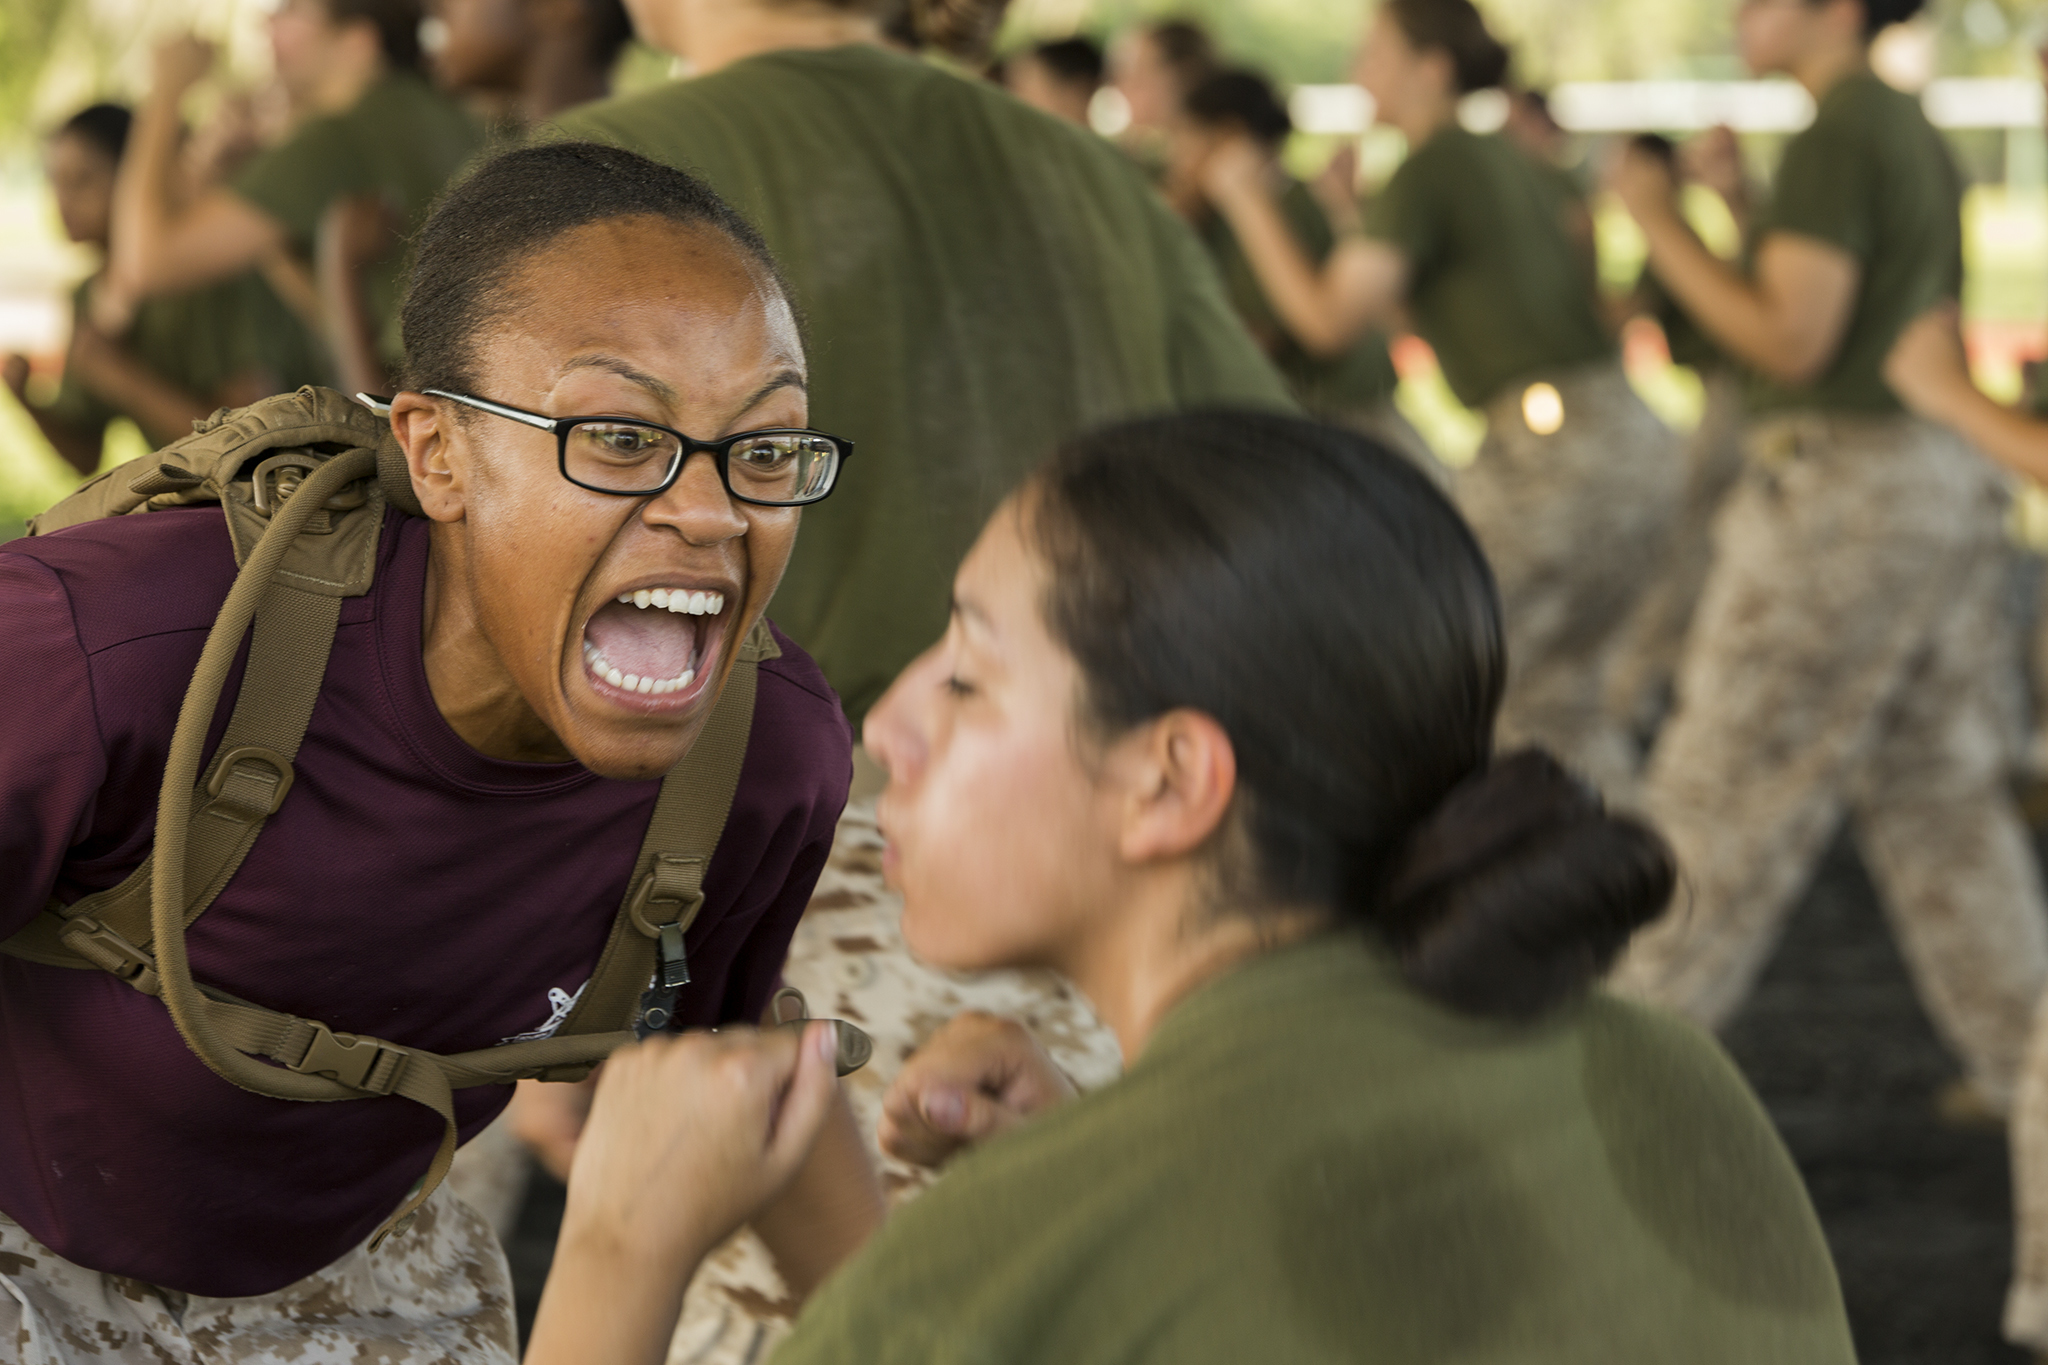 The boot camp gender divide: The case for co-ed training